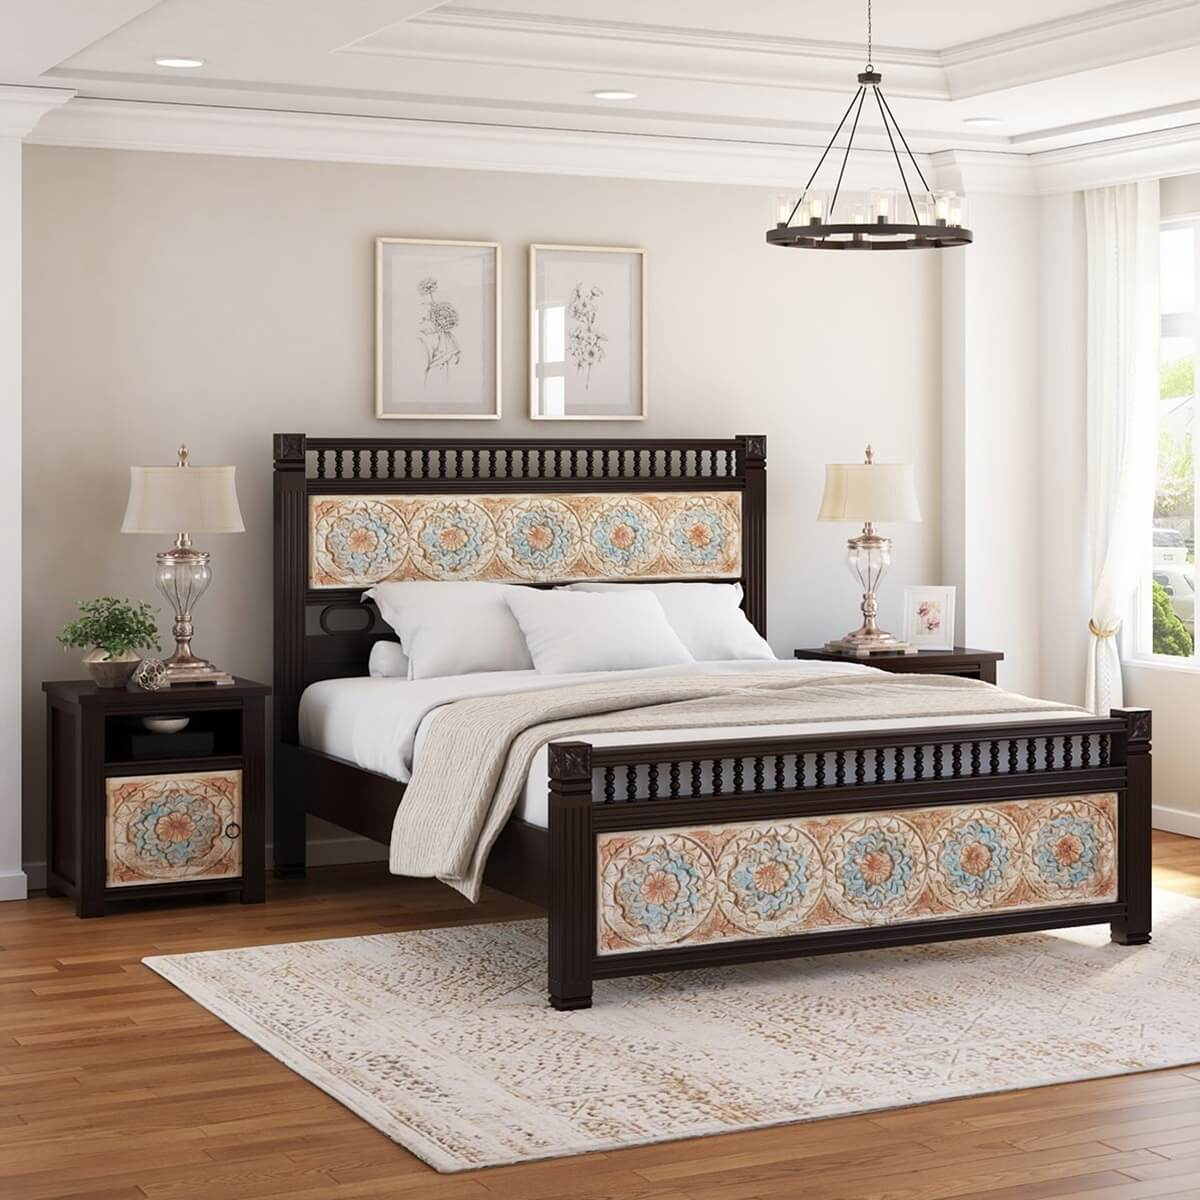 English Garden Mango Wood Hand Carved Platform Bed w Foot & Headboard